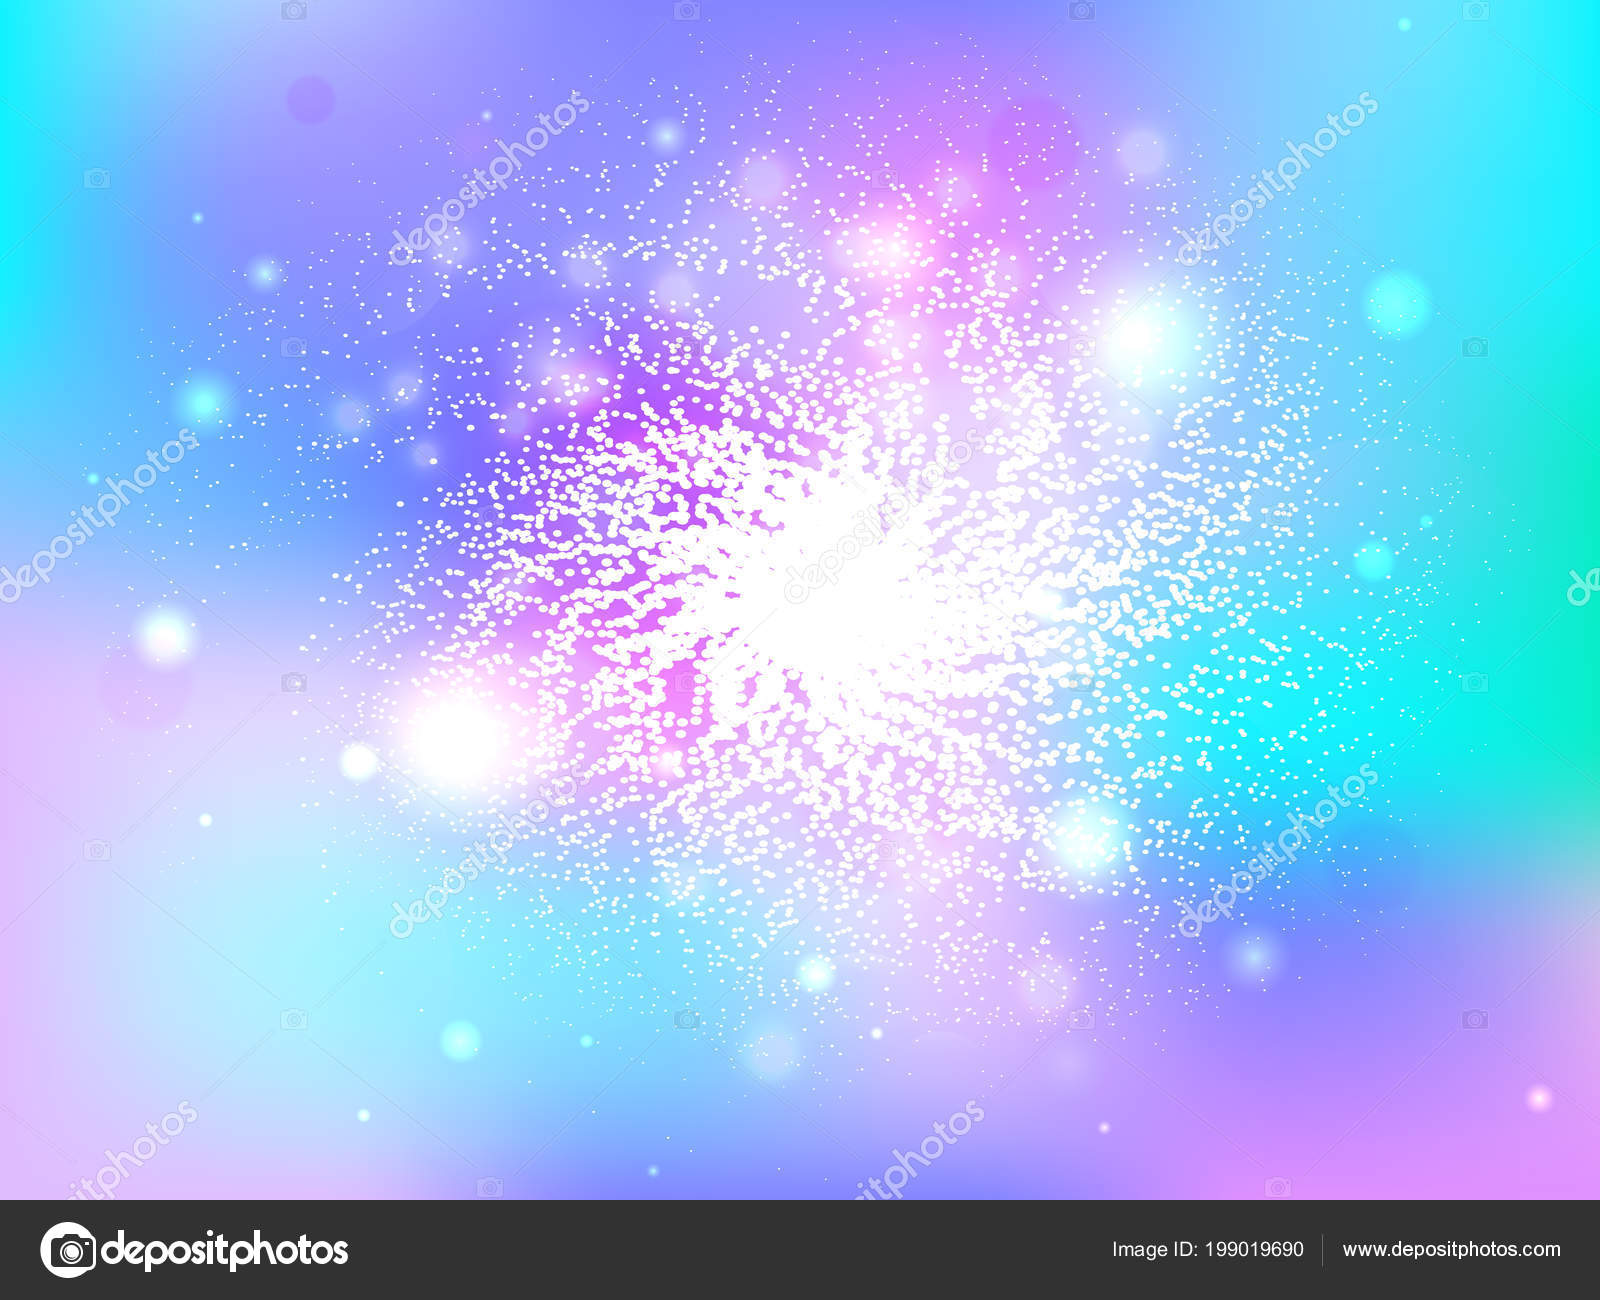 depositphotos 199019690 stock illustration colorful abstract background cute